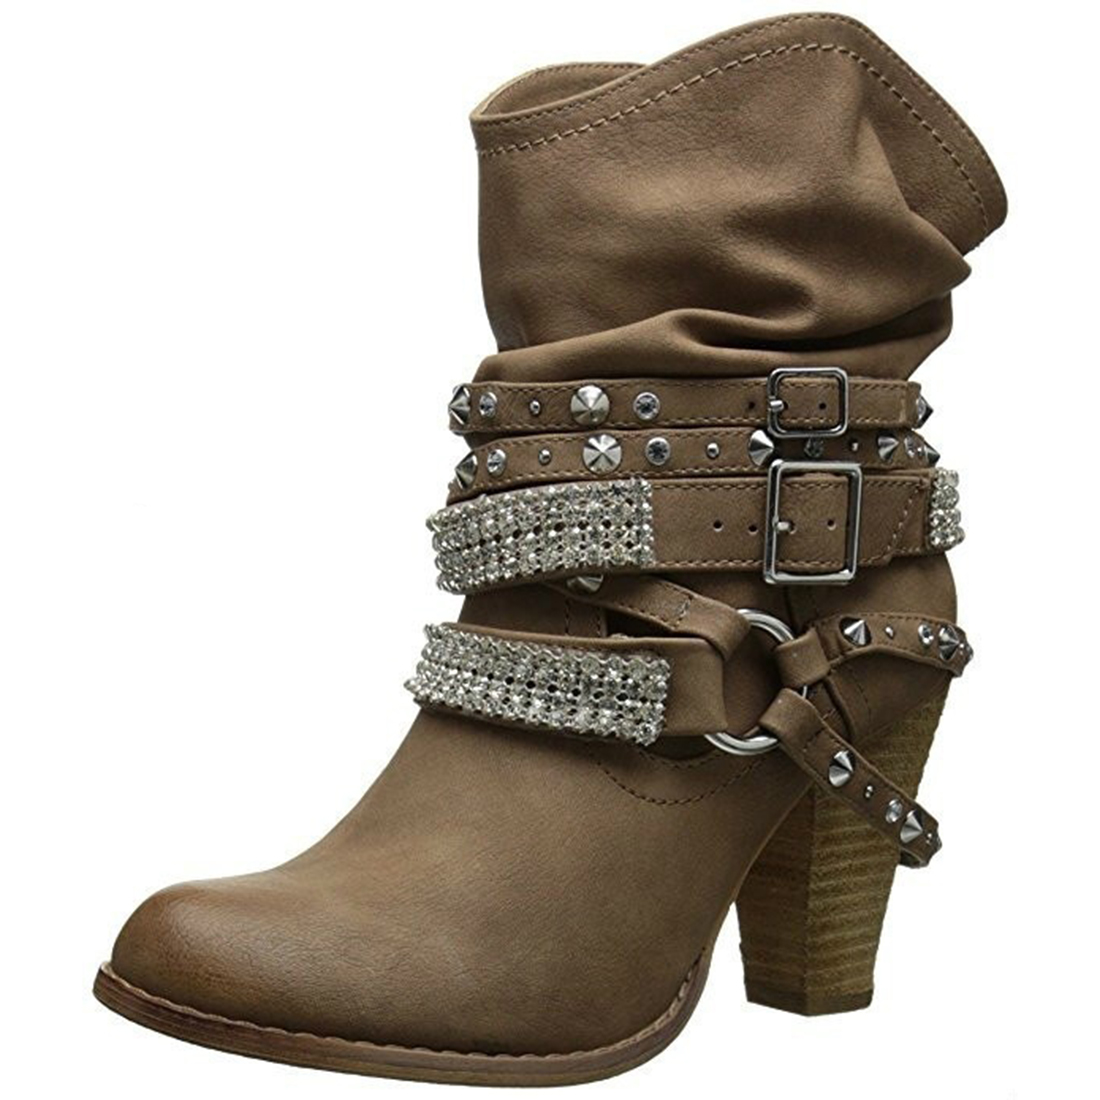 2018 Autumn Winter Shoes women Punk style high heel Boots rivet belt Buckle snow boots PU leather retro mid-calf boots plus size hot sale womens pu leather shoes lace up rivet metal decoration punk style prom ankle boots for women casual footwear plus size